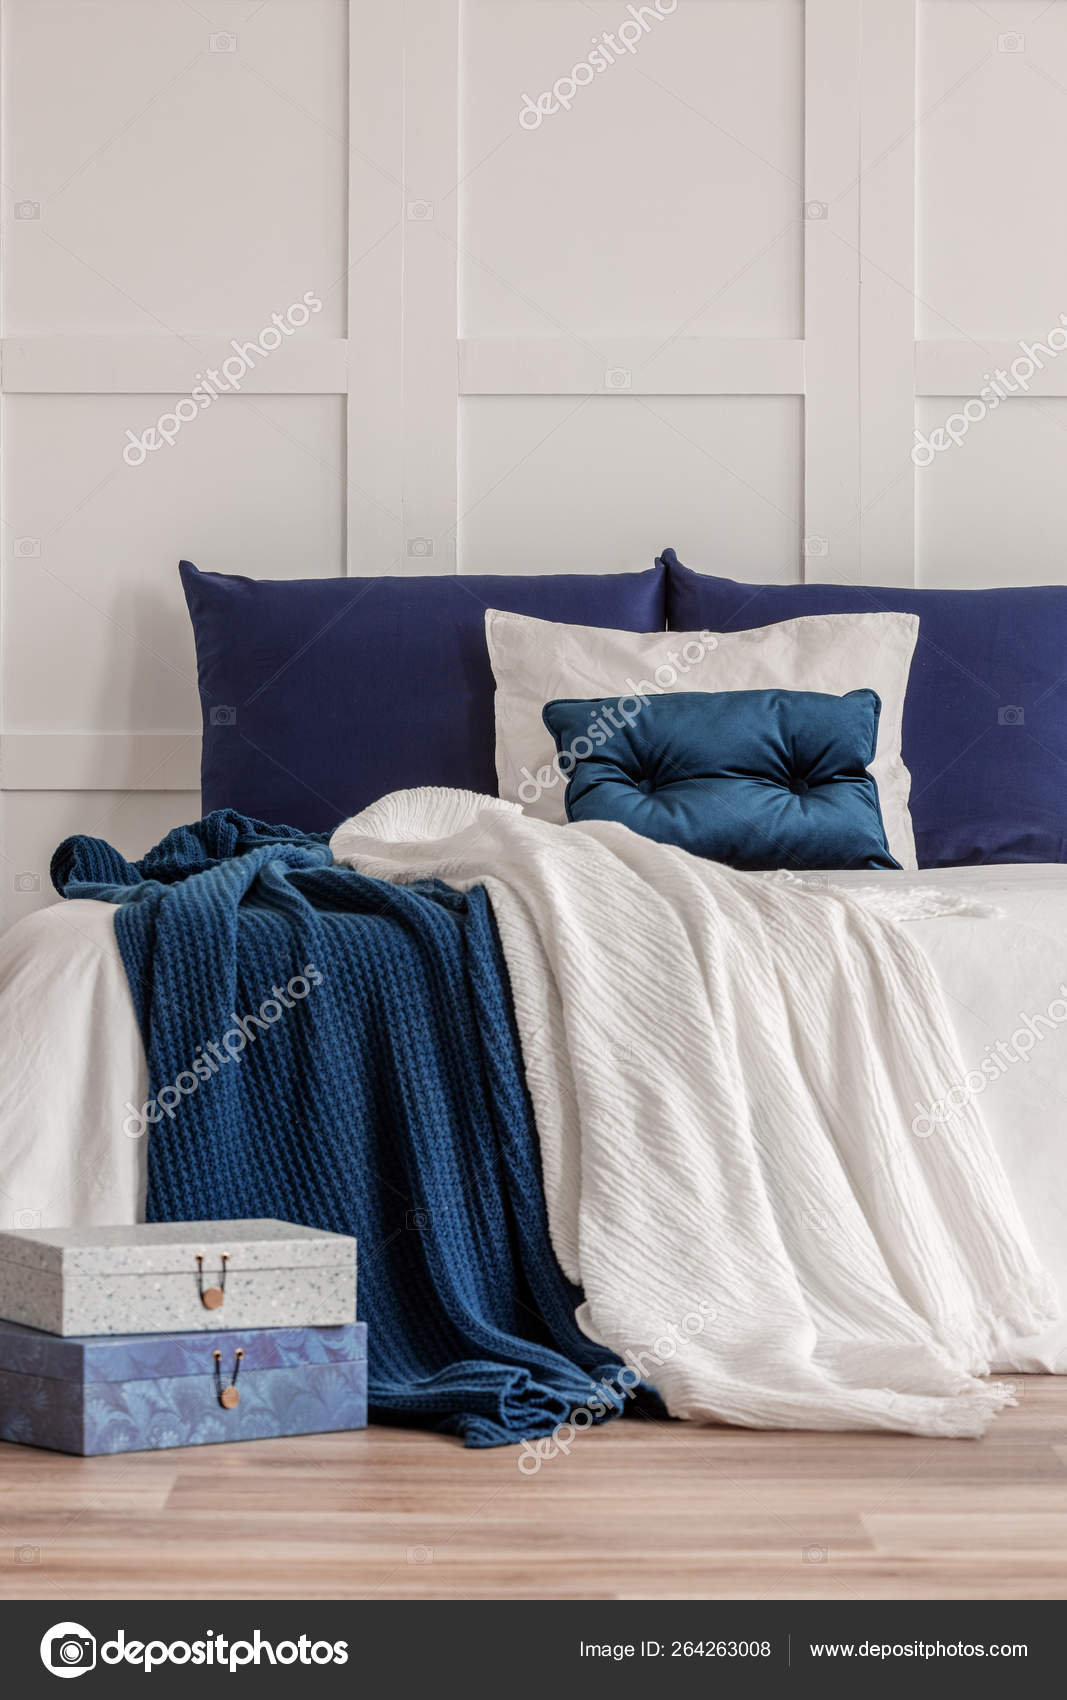 Simple Navy Blue And White Bedroom Interior With Cozy Bed With Pillows And Duvet Stock Photo C Photographee Eu 264263008